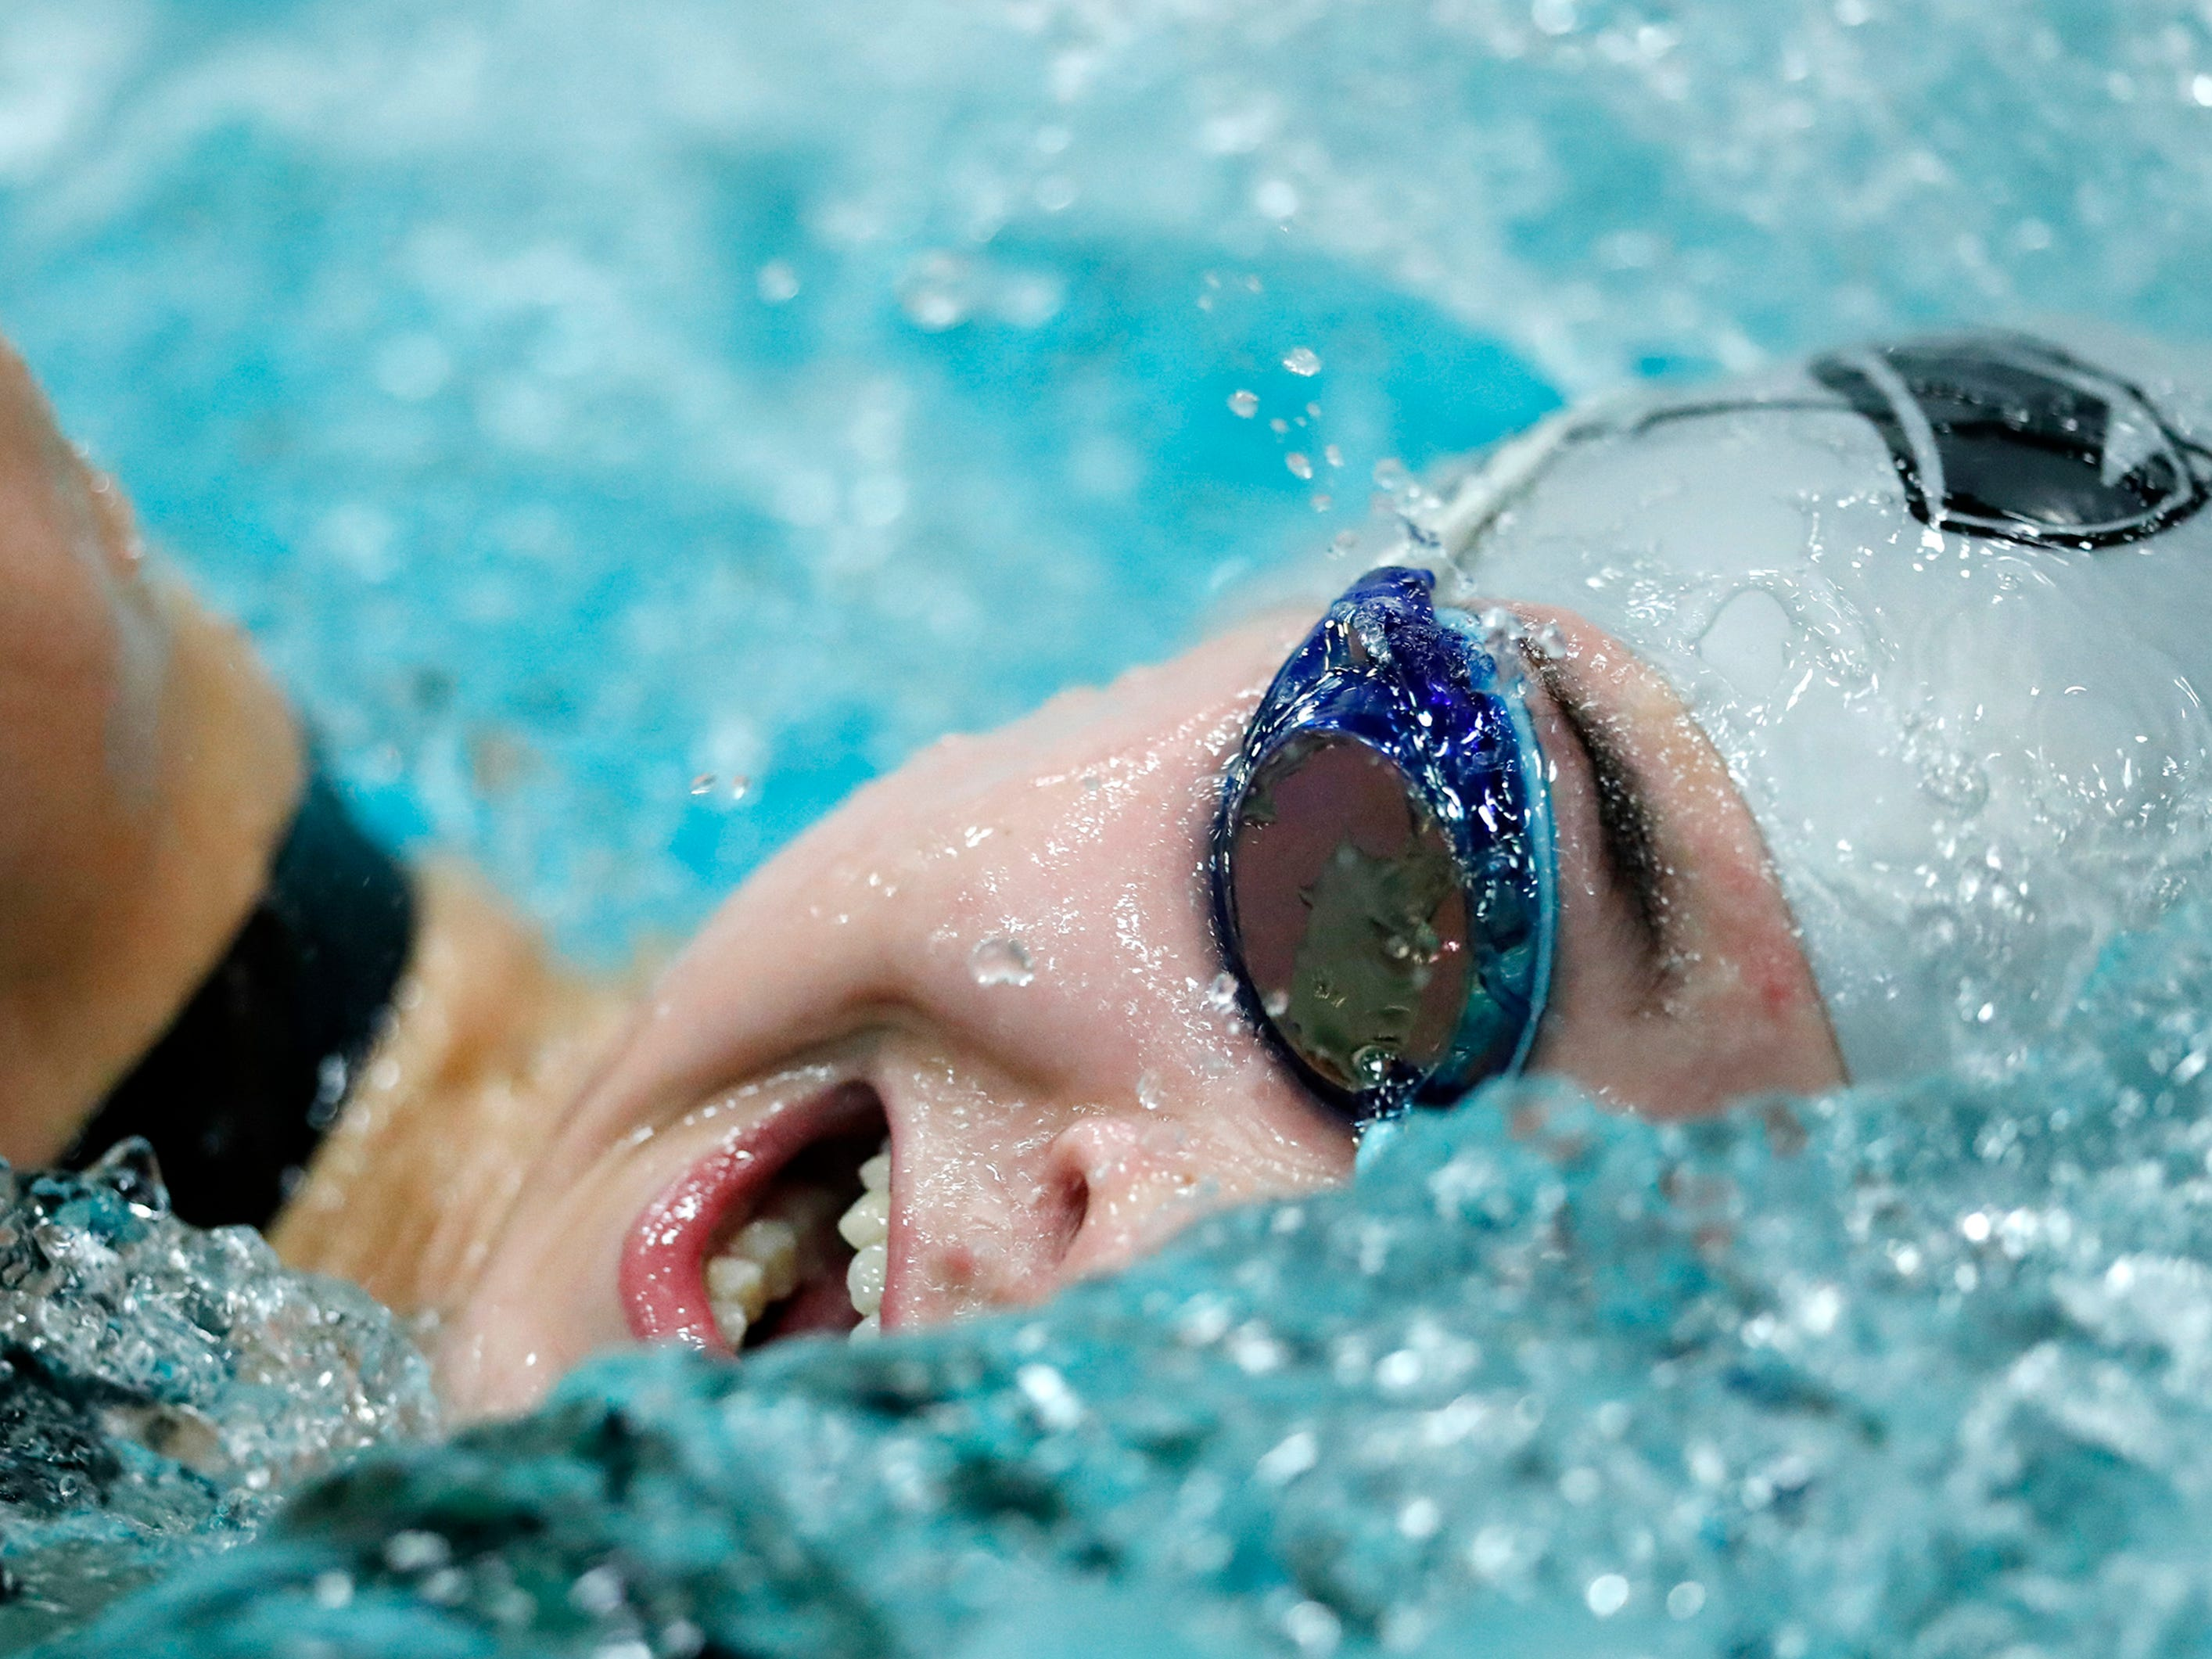 Merrill's Grace Schultz races in the 200 yard freestyle during the WIAA Division 2 State Swimming and Diving meet Friday, Nov. 9, 2018, at the UW Natatorium in Madison, Wis.